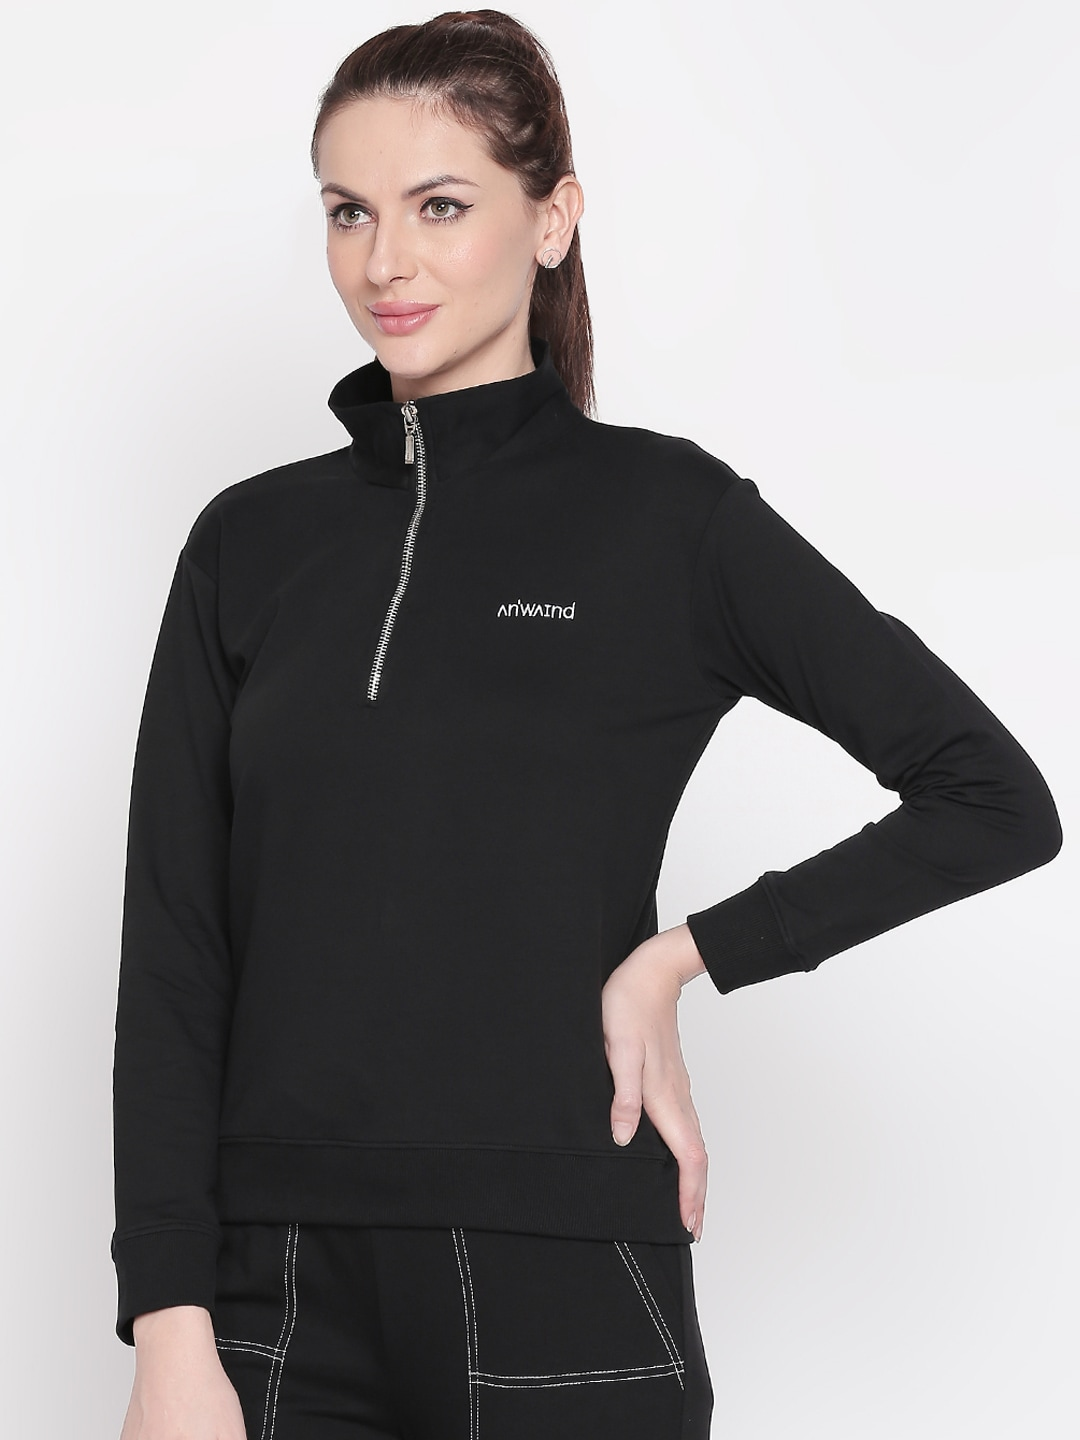 ANWAIND Women Black Solid Sweatshirt